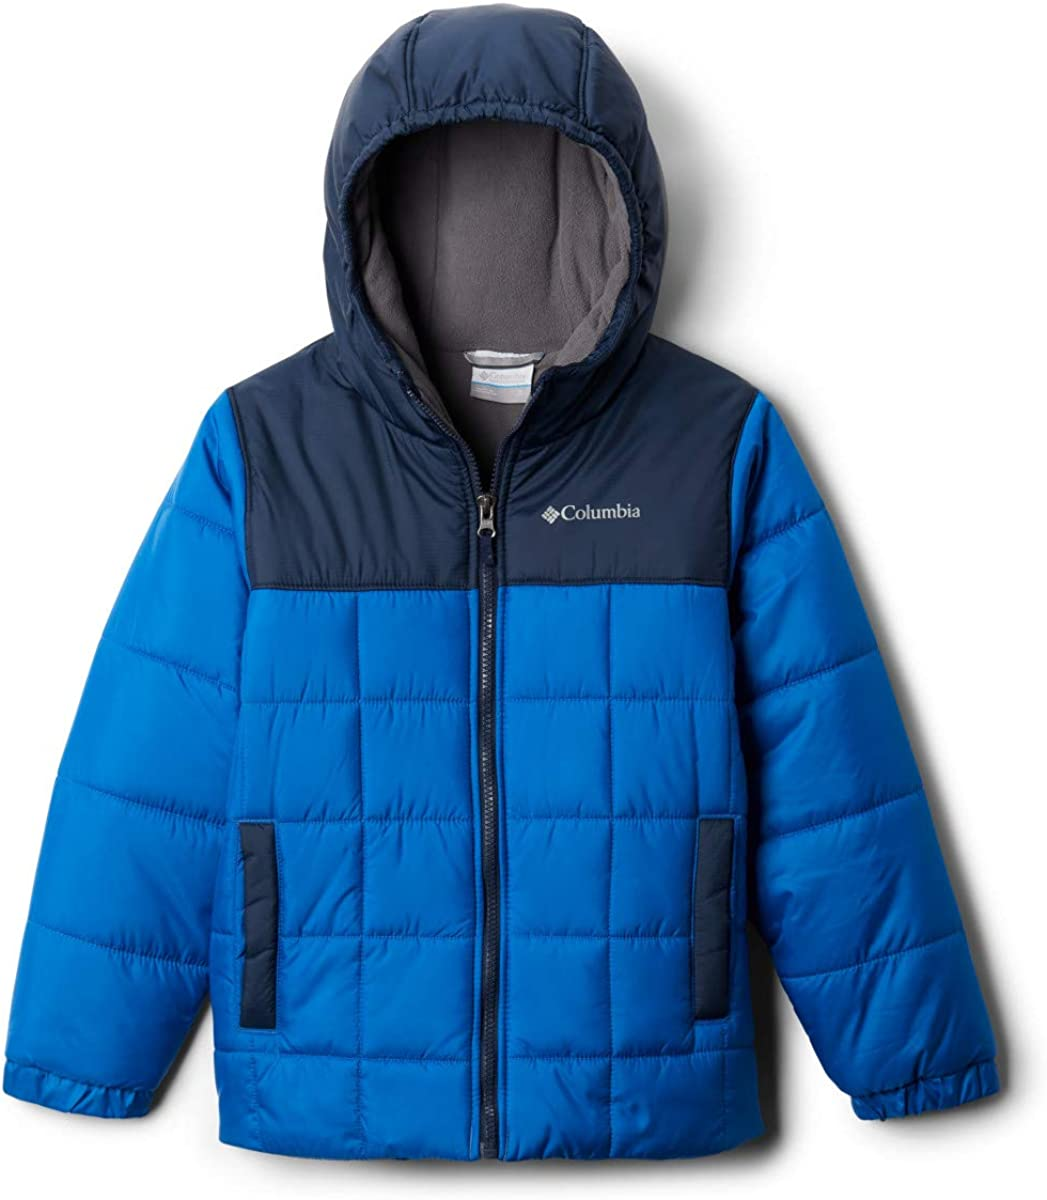 Columbia Manufacturer direct delivery Boys' Puffect II Puffer Zip Full Insu Resistant Store Water